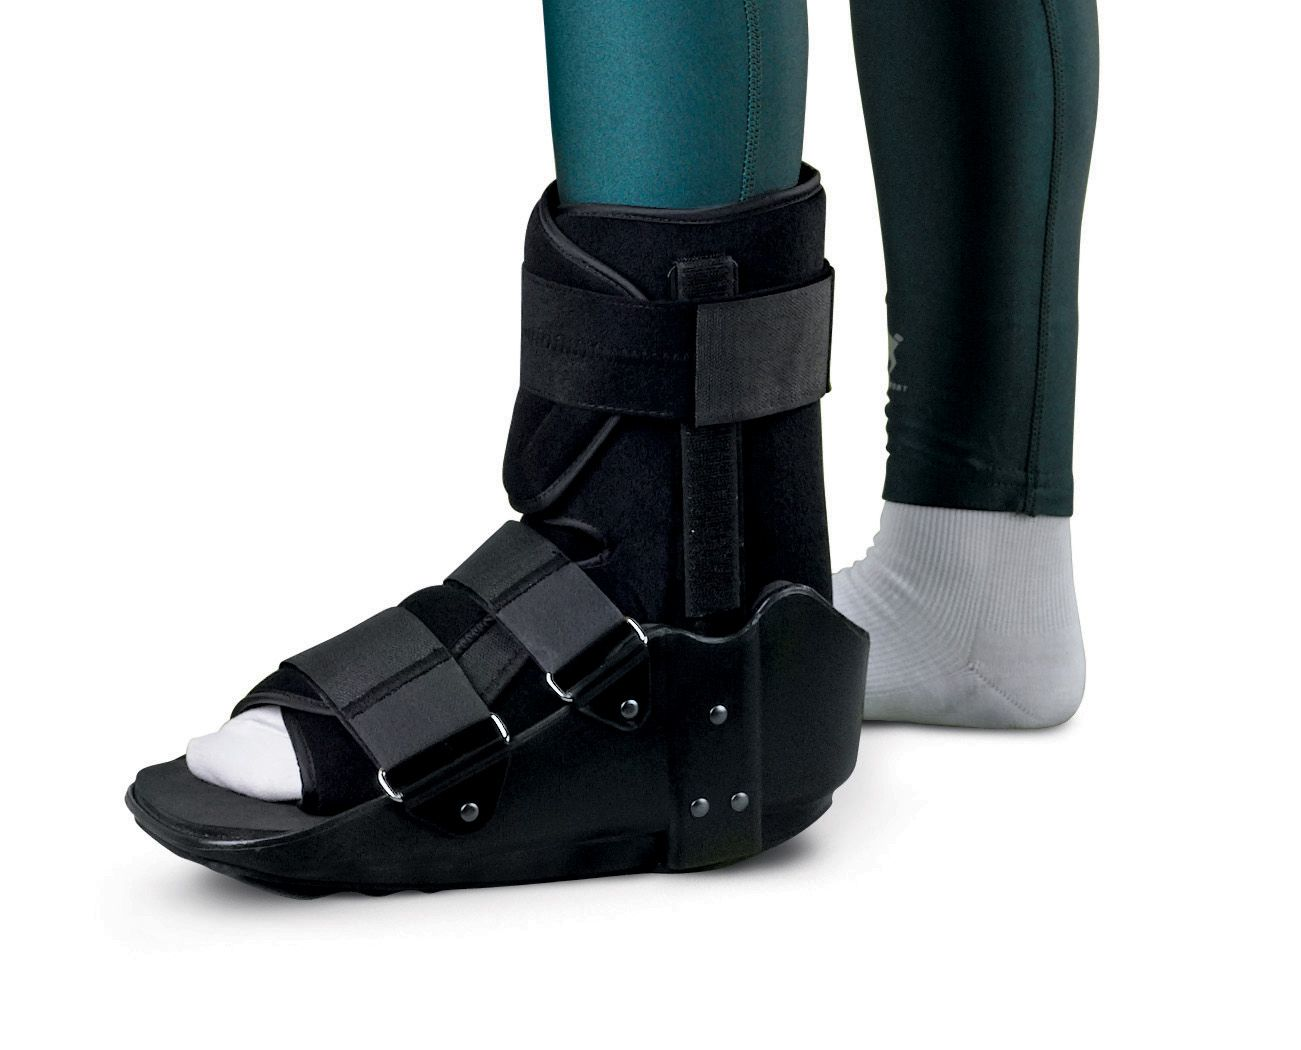 Medline Standard Ankle Walker - Ambi, Nonskid, Xs, Each - Model ORT28200XS